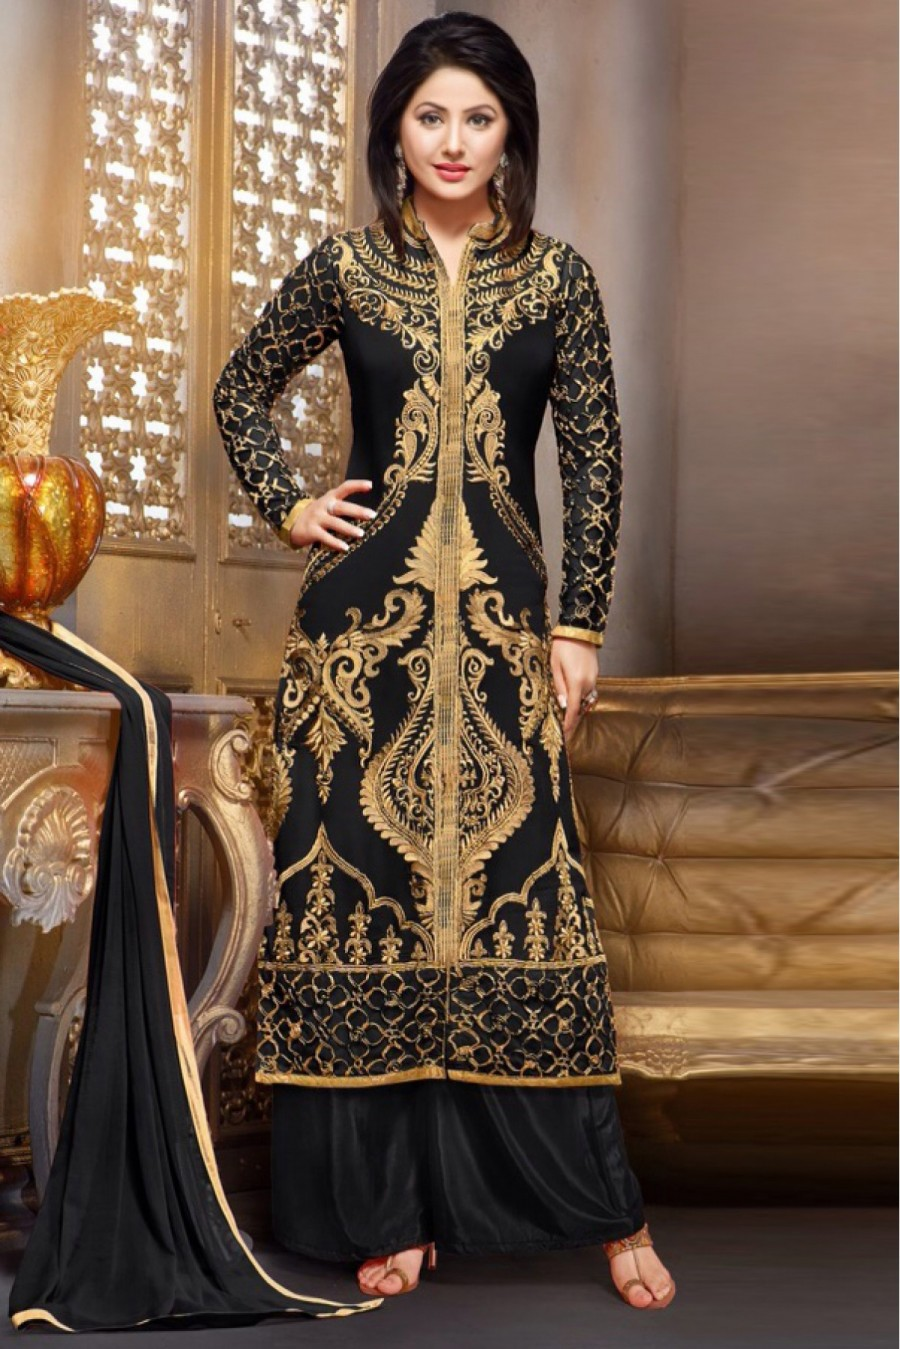 f49a2733b2 Buy Bollywood Hina Khan Georgette Party Wear Palazzo Pant Suit In Black  Colour Online